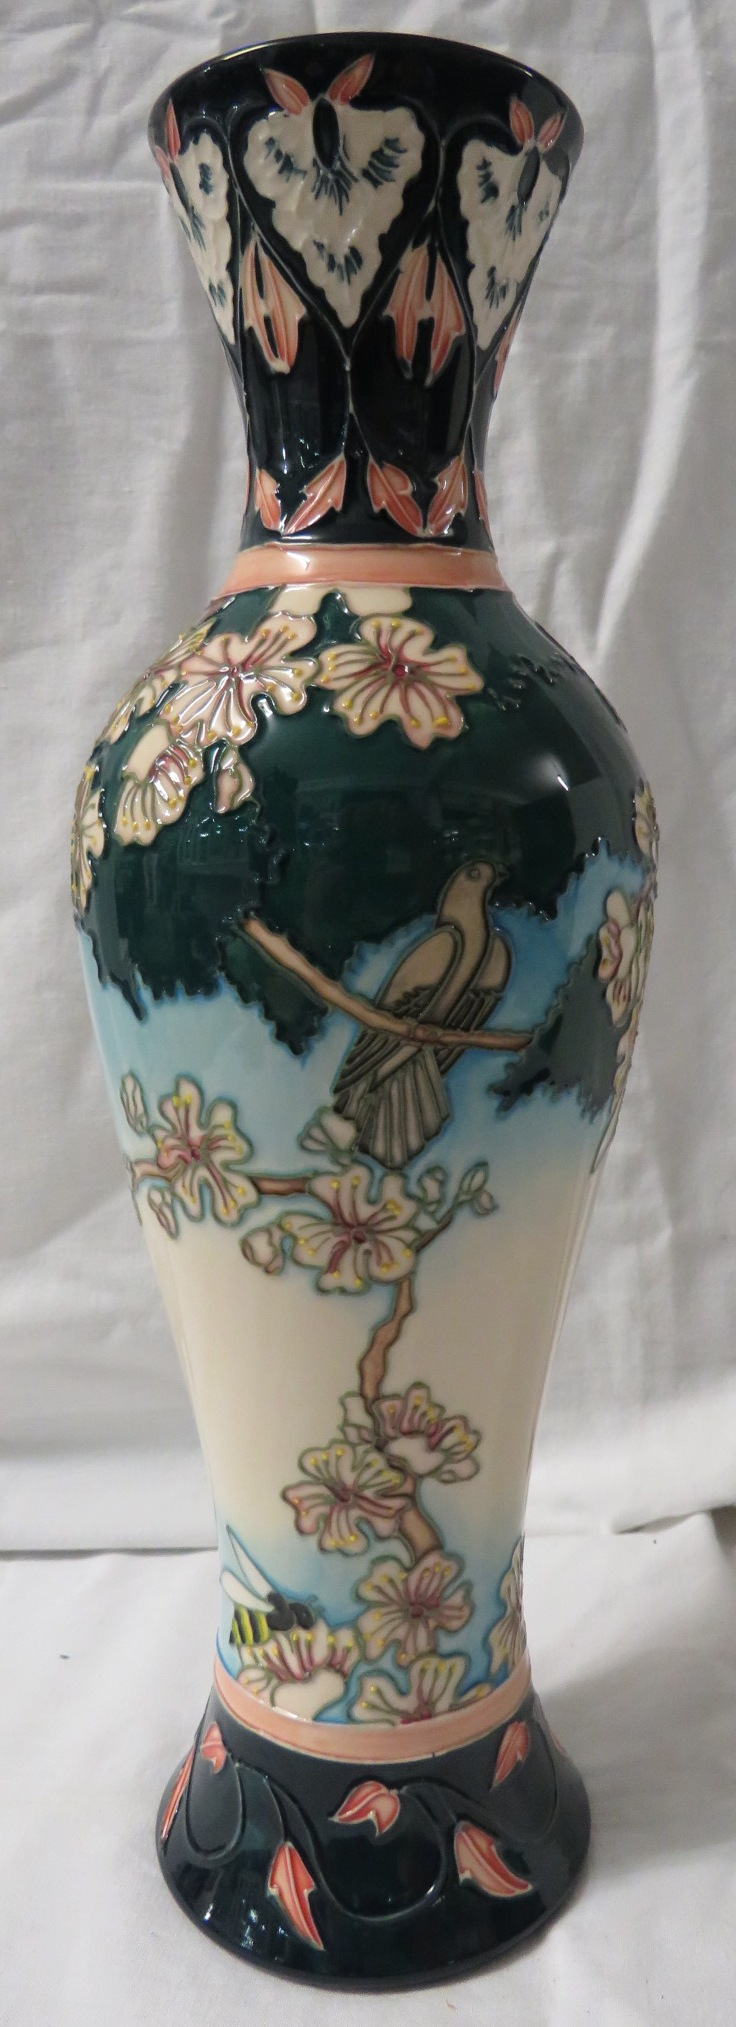 Lot 23 - Moorcroft Pottery five star members slender baluster vase 'Cuckoo Song', decorated with bird in